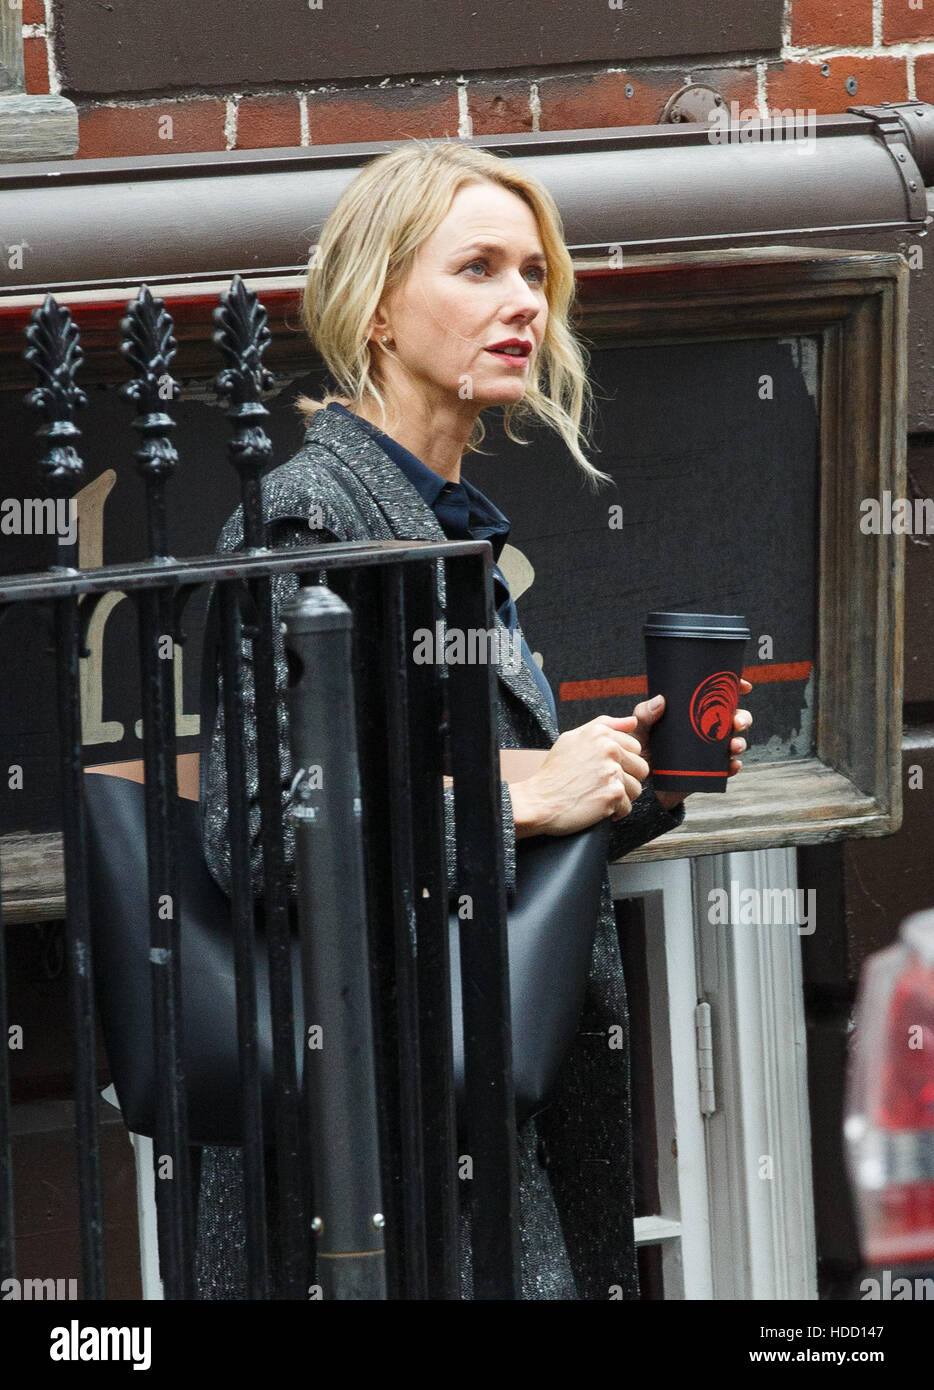 Naomi Watts filming the Netflix psychological drama series